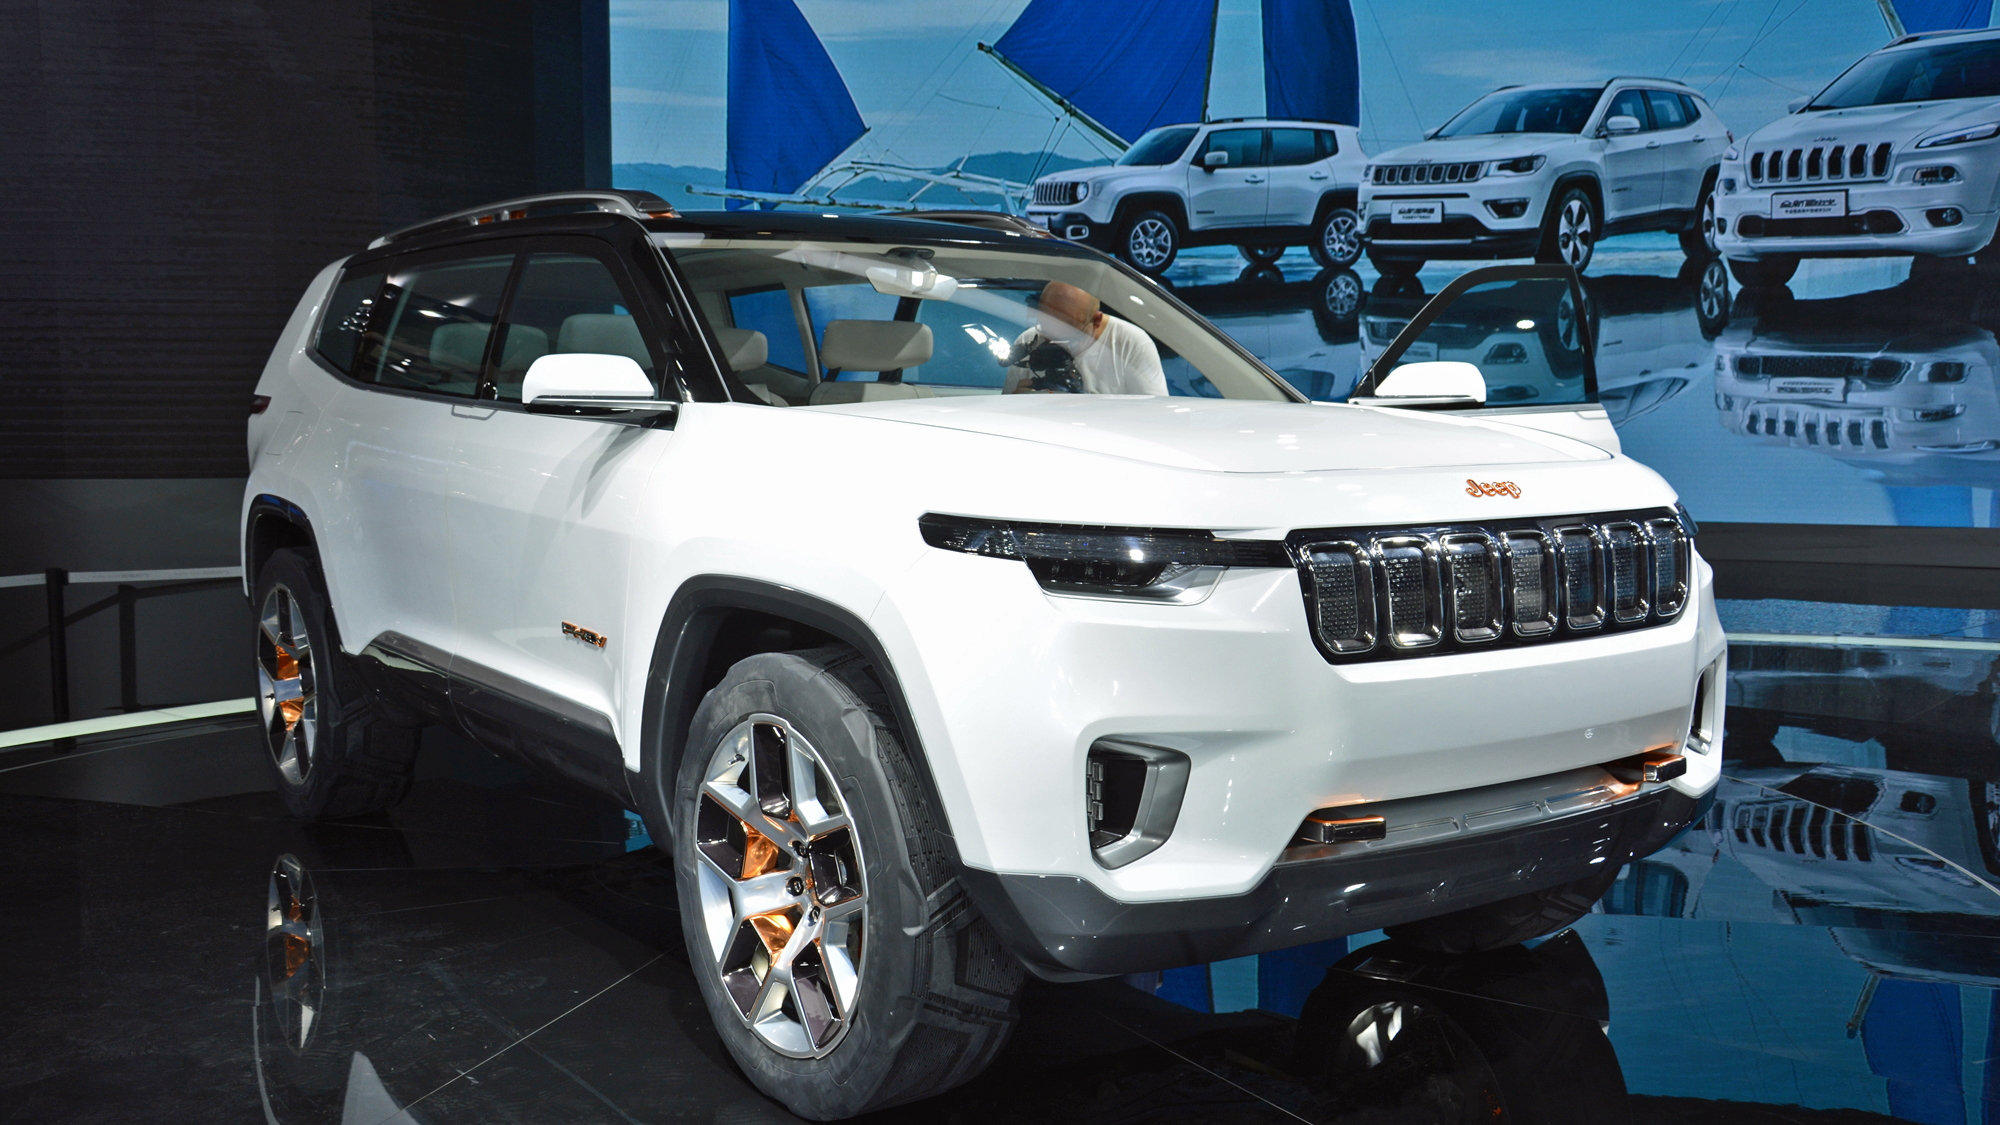 7 Seater Suv 2017 >> Jeep Yuntu Hybrid Concept May Foreshadow Future Chinese 7